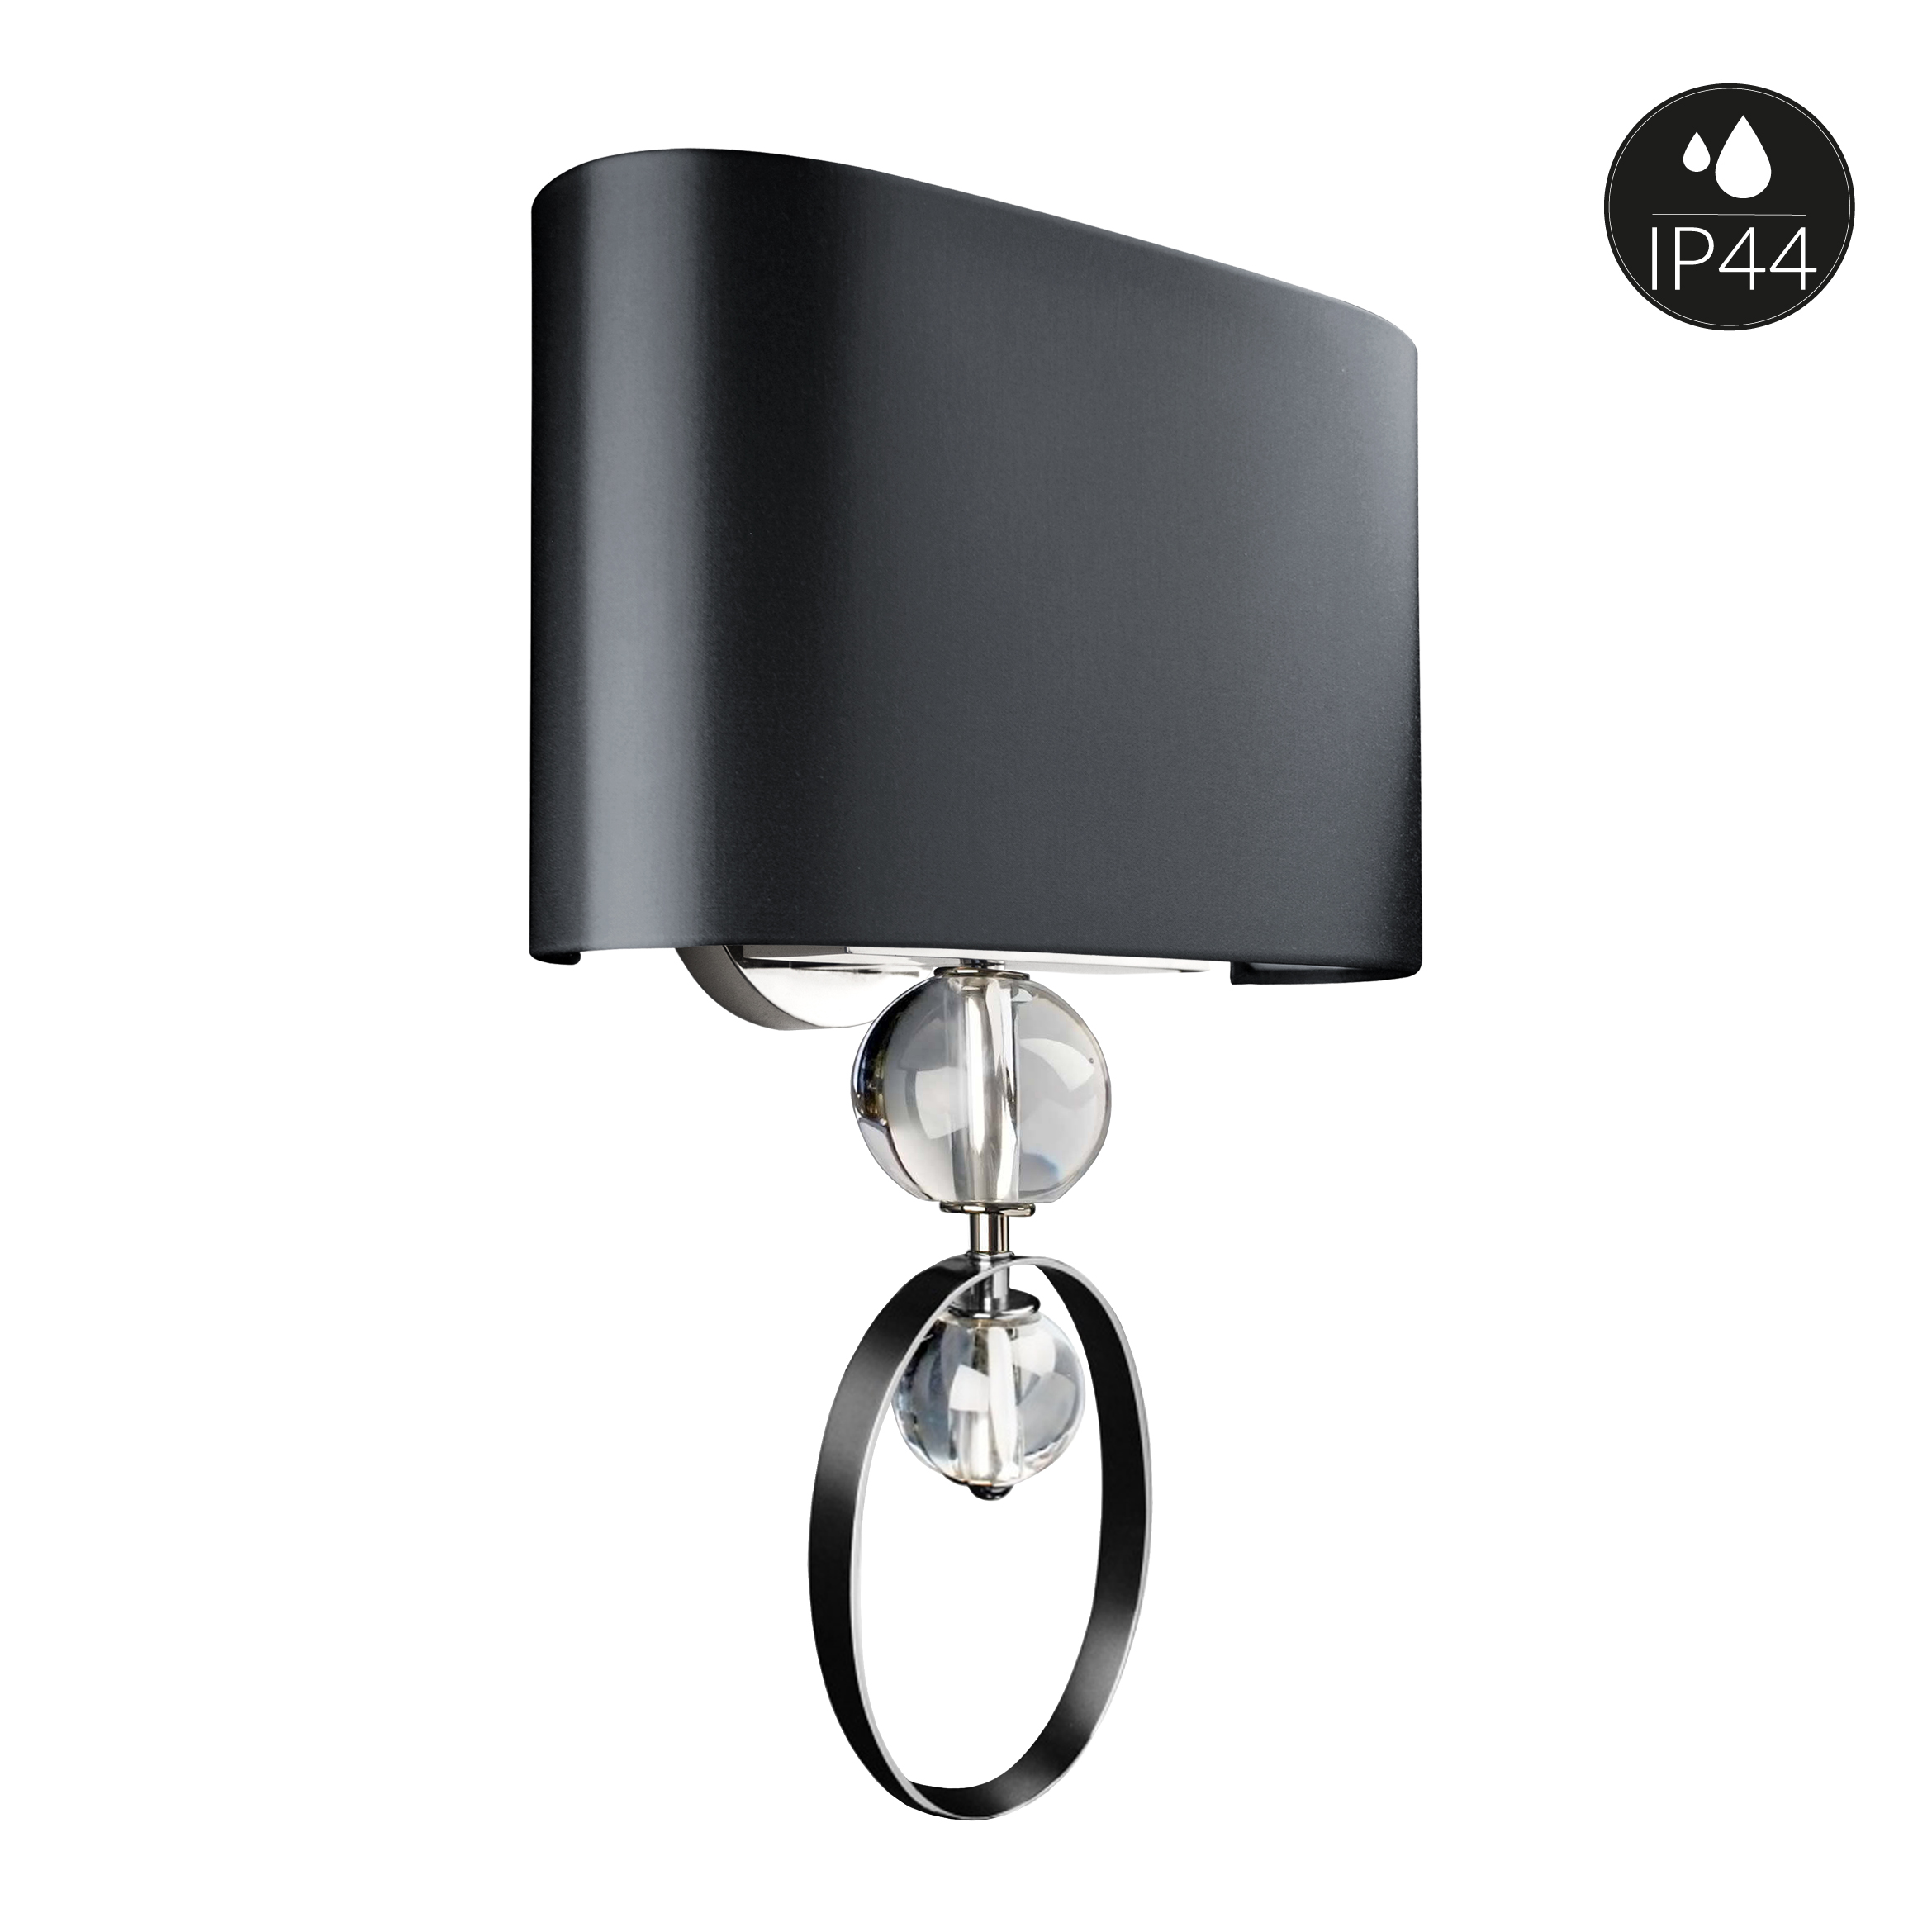 arco lighting. IP44 Wall Lights Square_arco Arco Lighting A